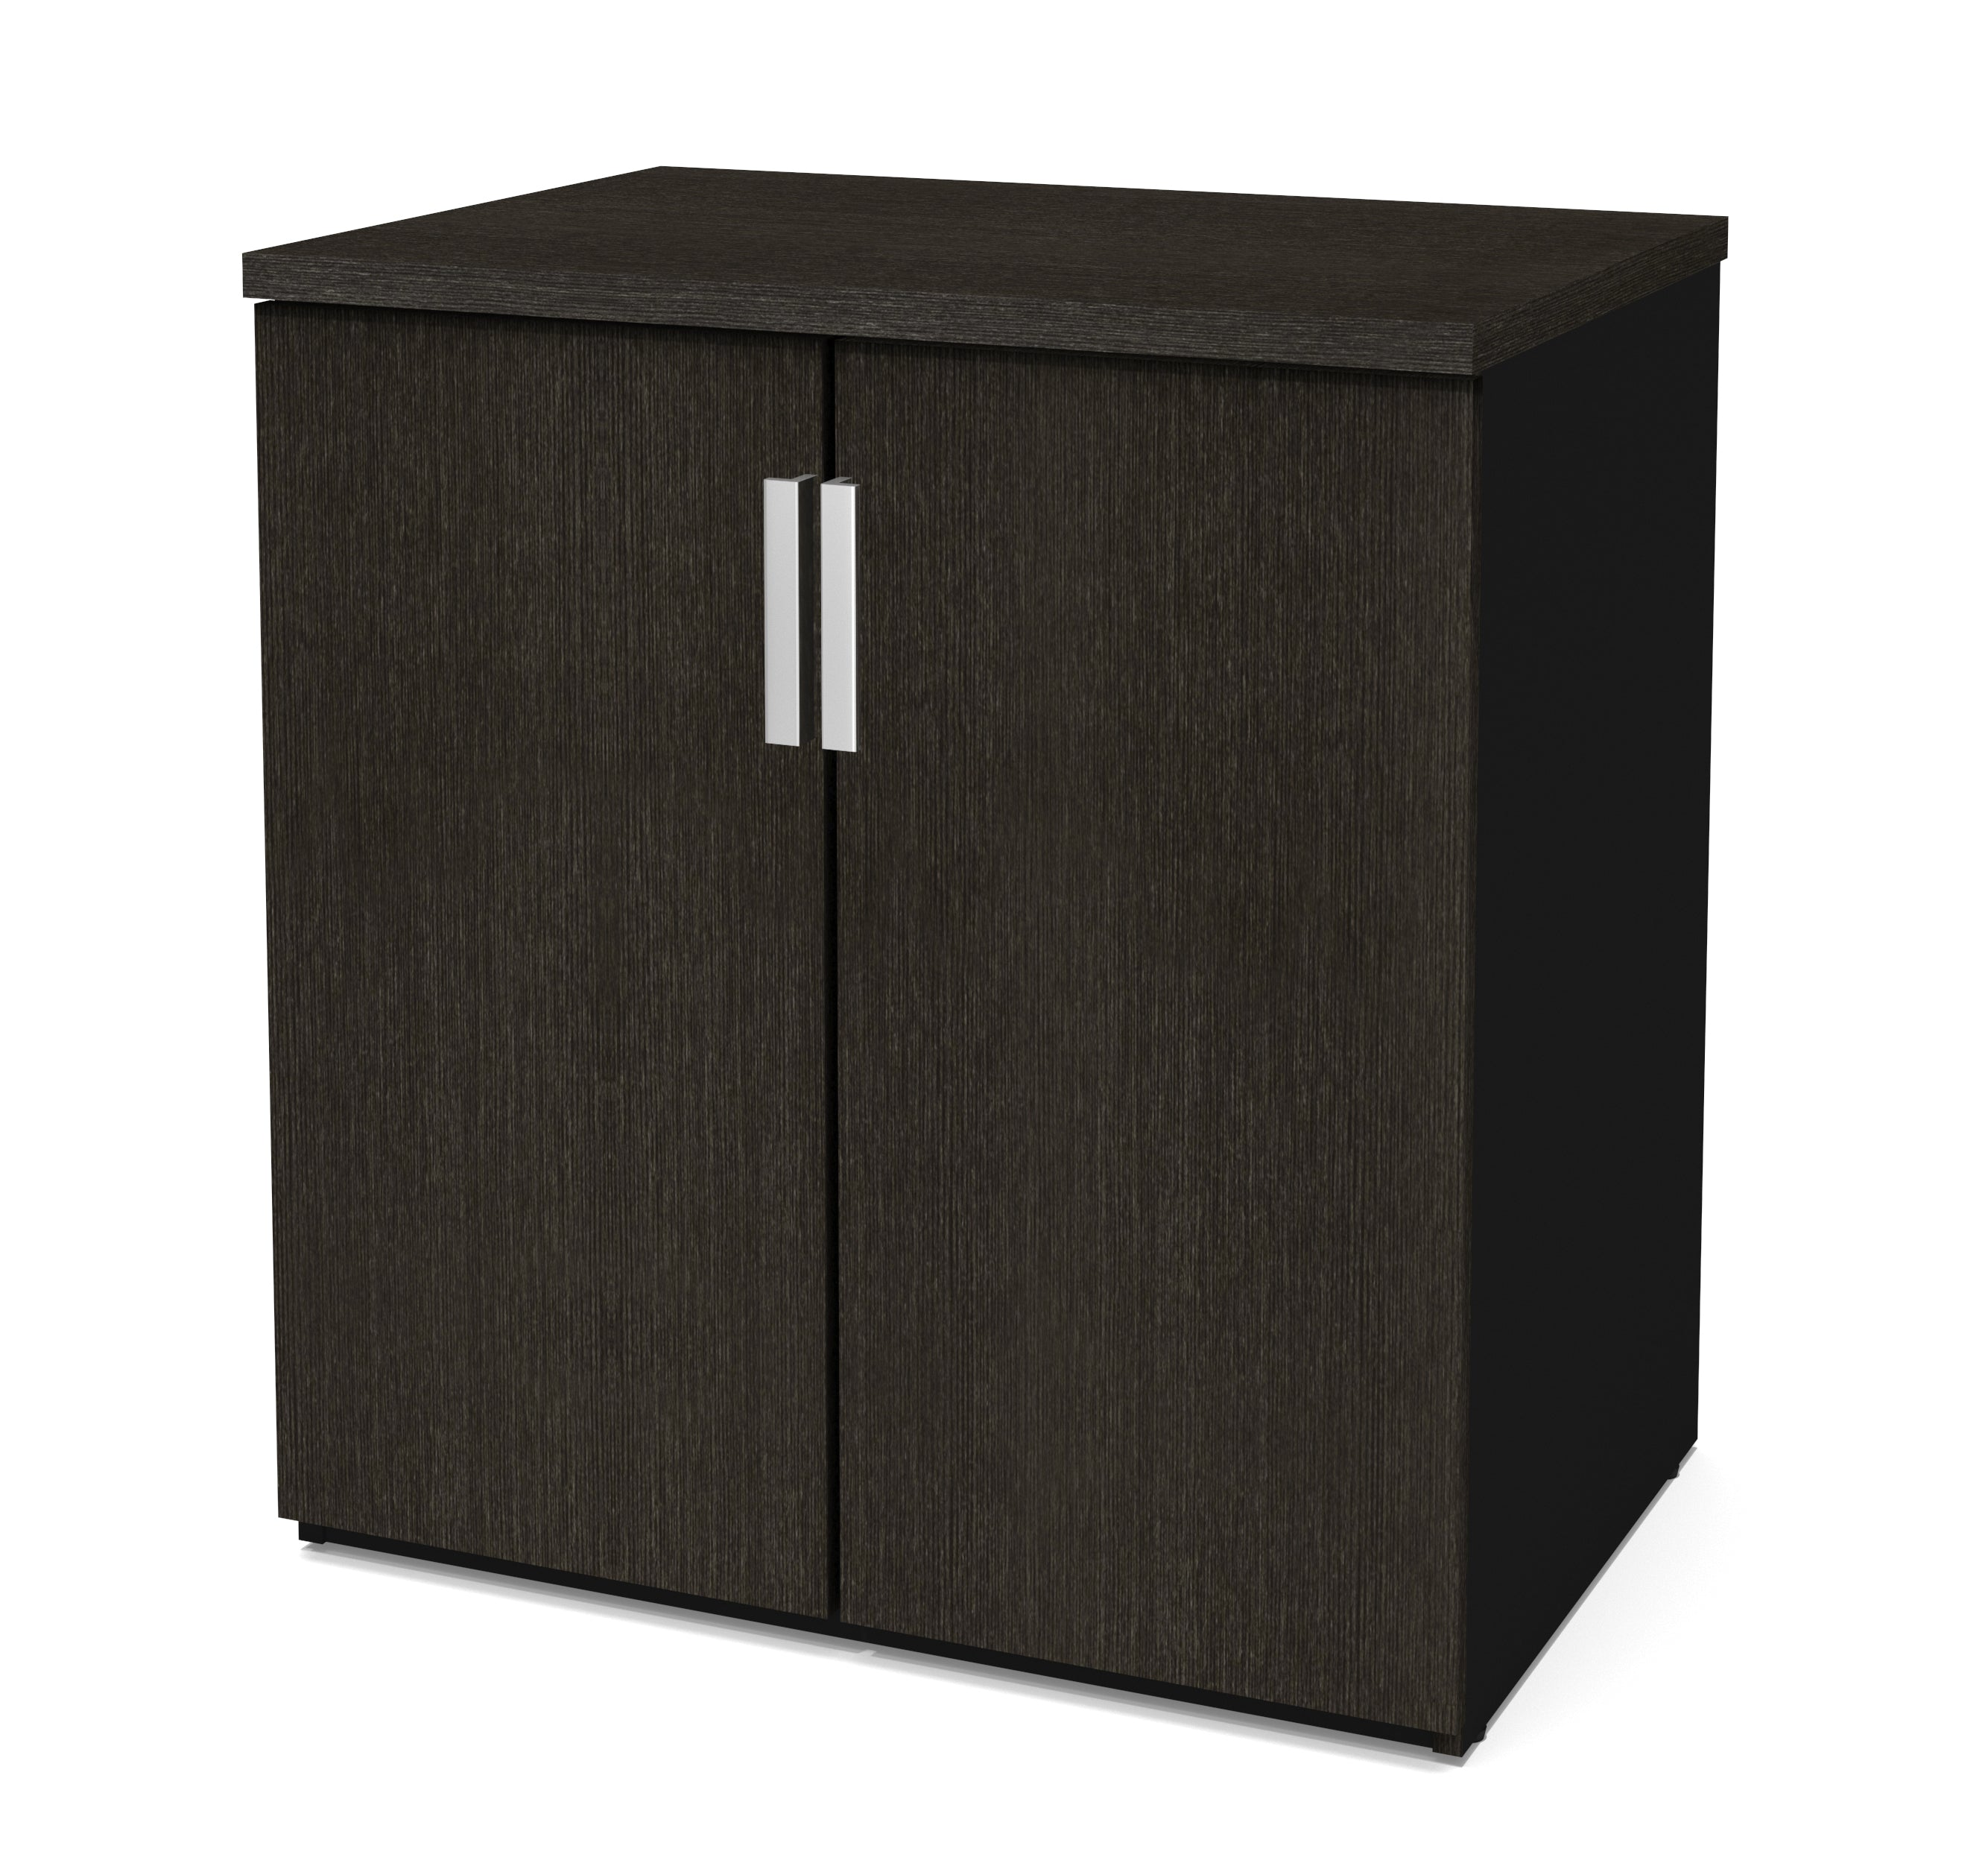 "Elegant Deep Gray & Black 30"" Storage Cabinet with Dual Shelves"